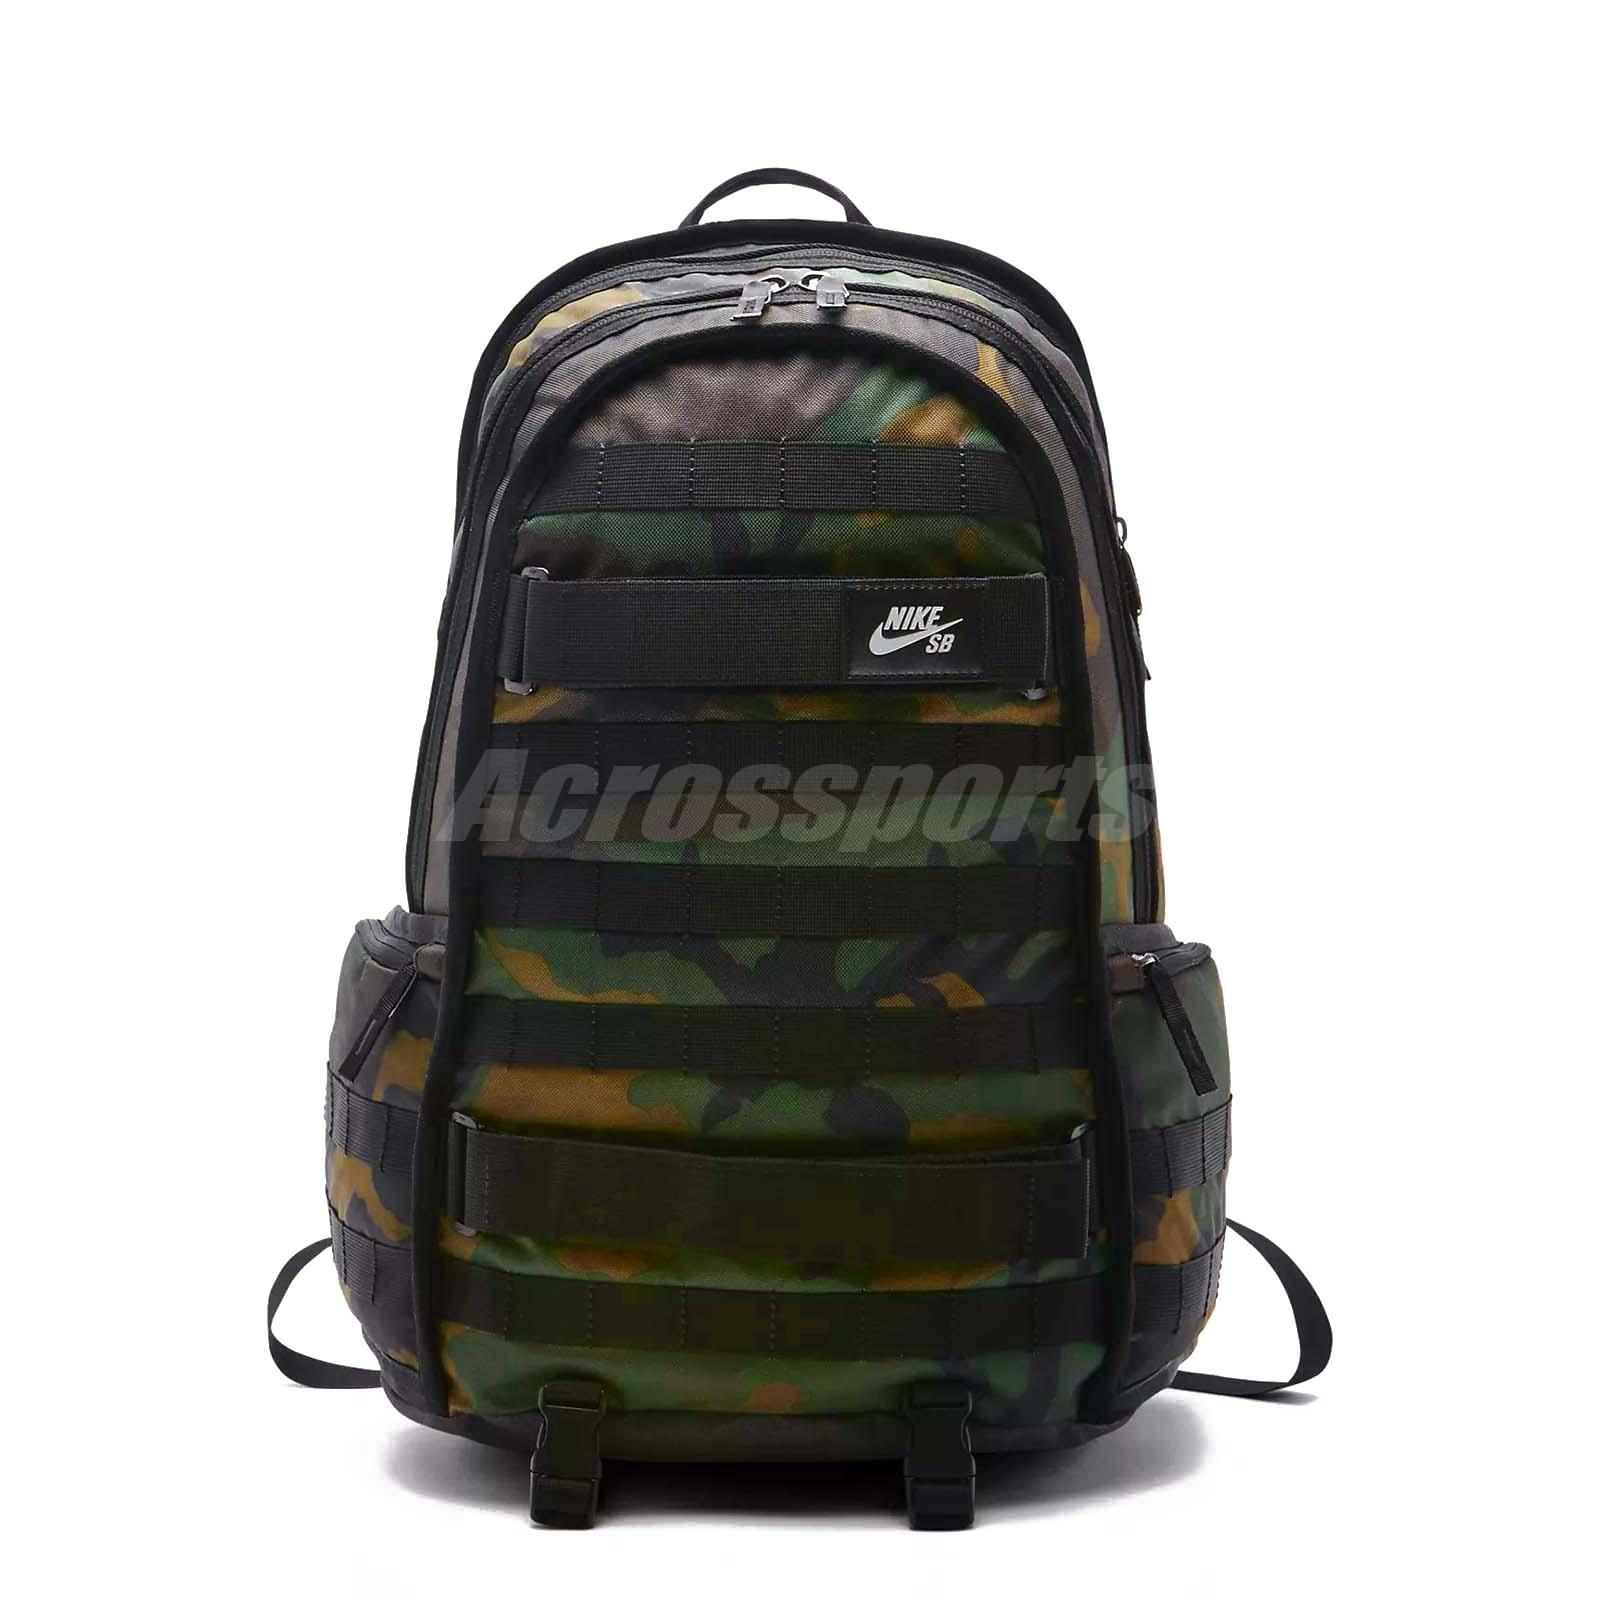 Details about Nike SB RPM Graphic Camo Skateboarding Backpack Sports Training Bag BA5404 223